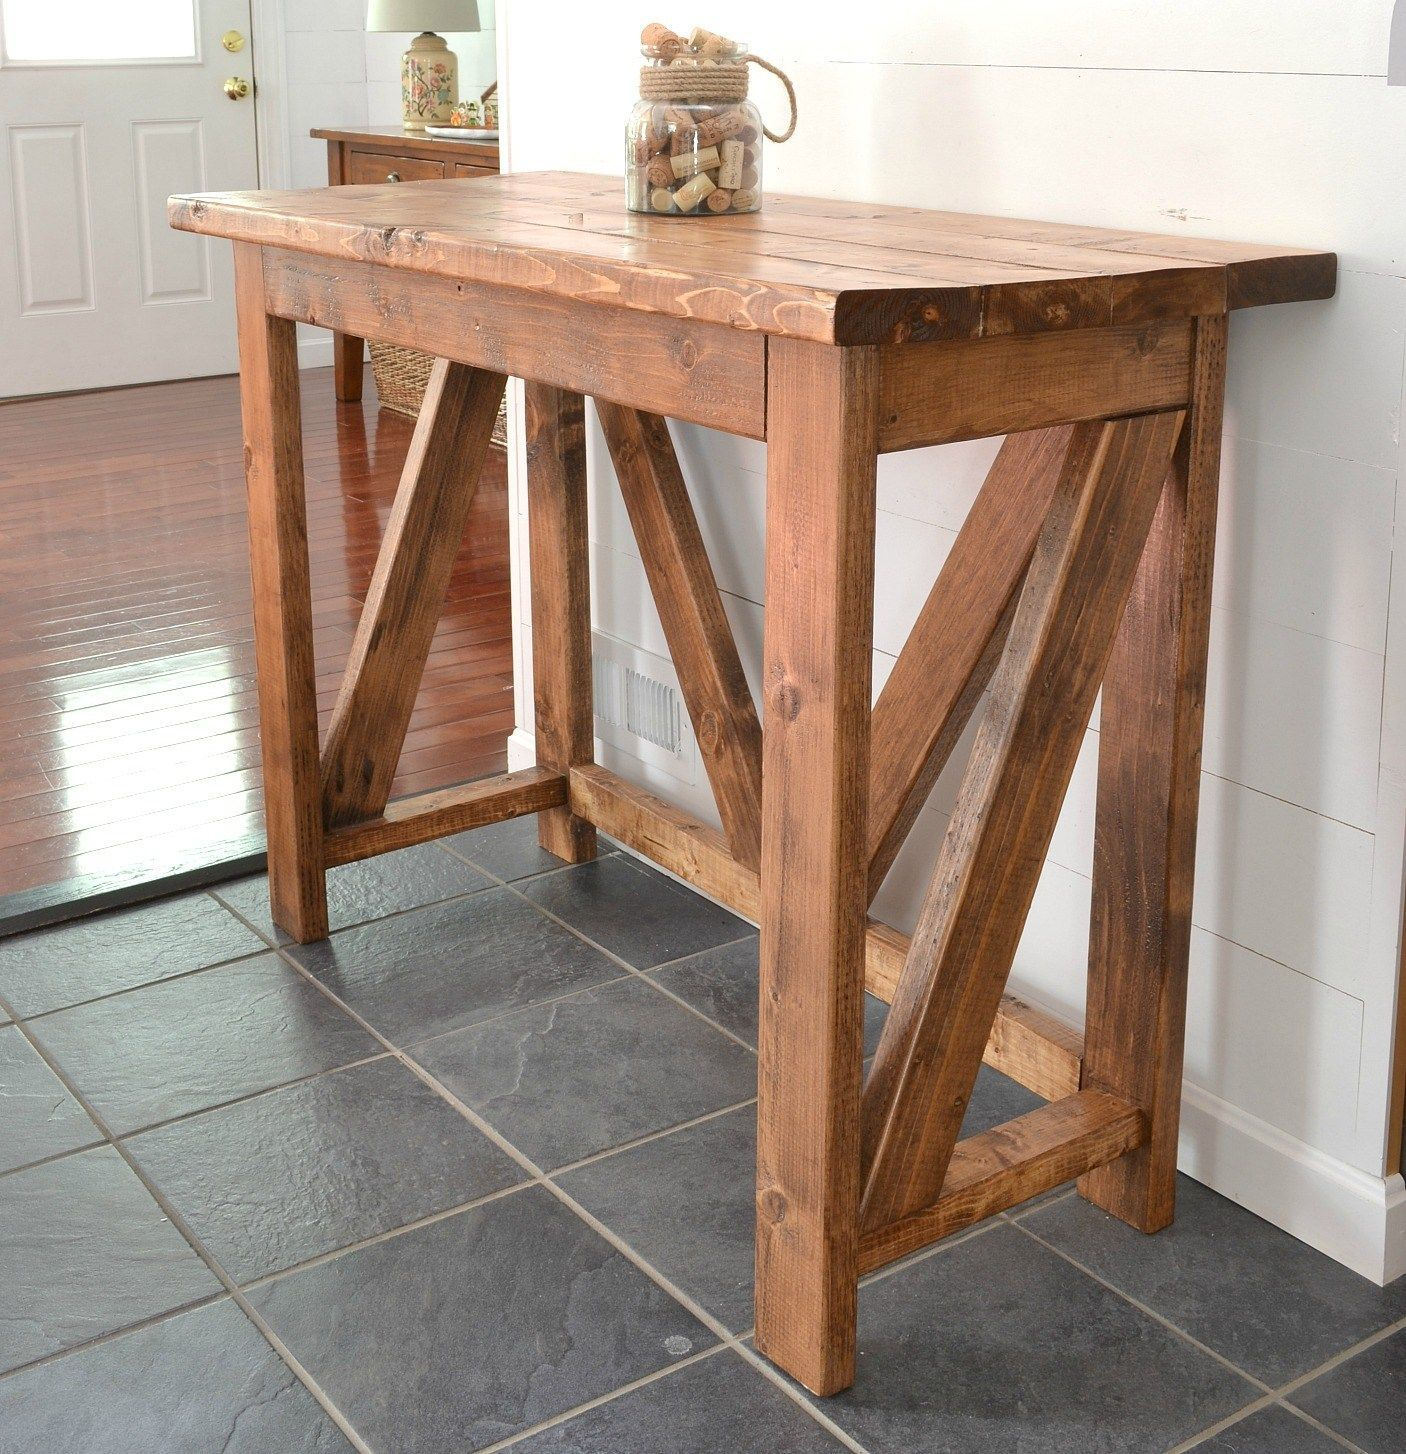 Ana White - Build A $40 Breakfast Bar Featuring I